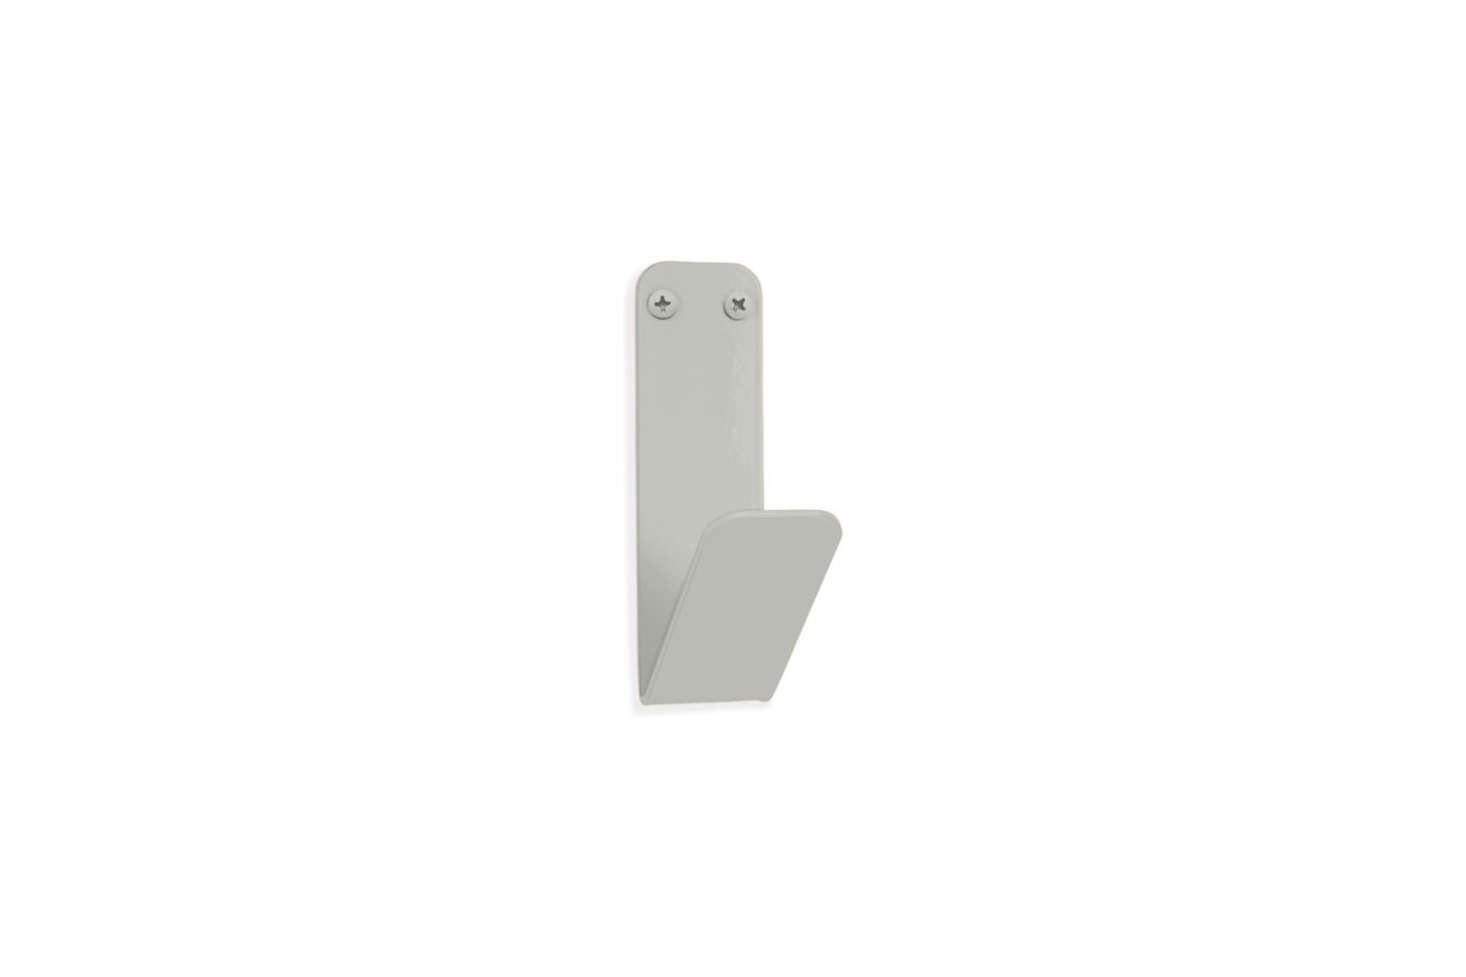 Another style from Room & Board is the Crew Single Wall Hook in 15 different colors for $20 each.